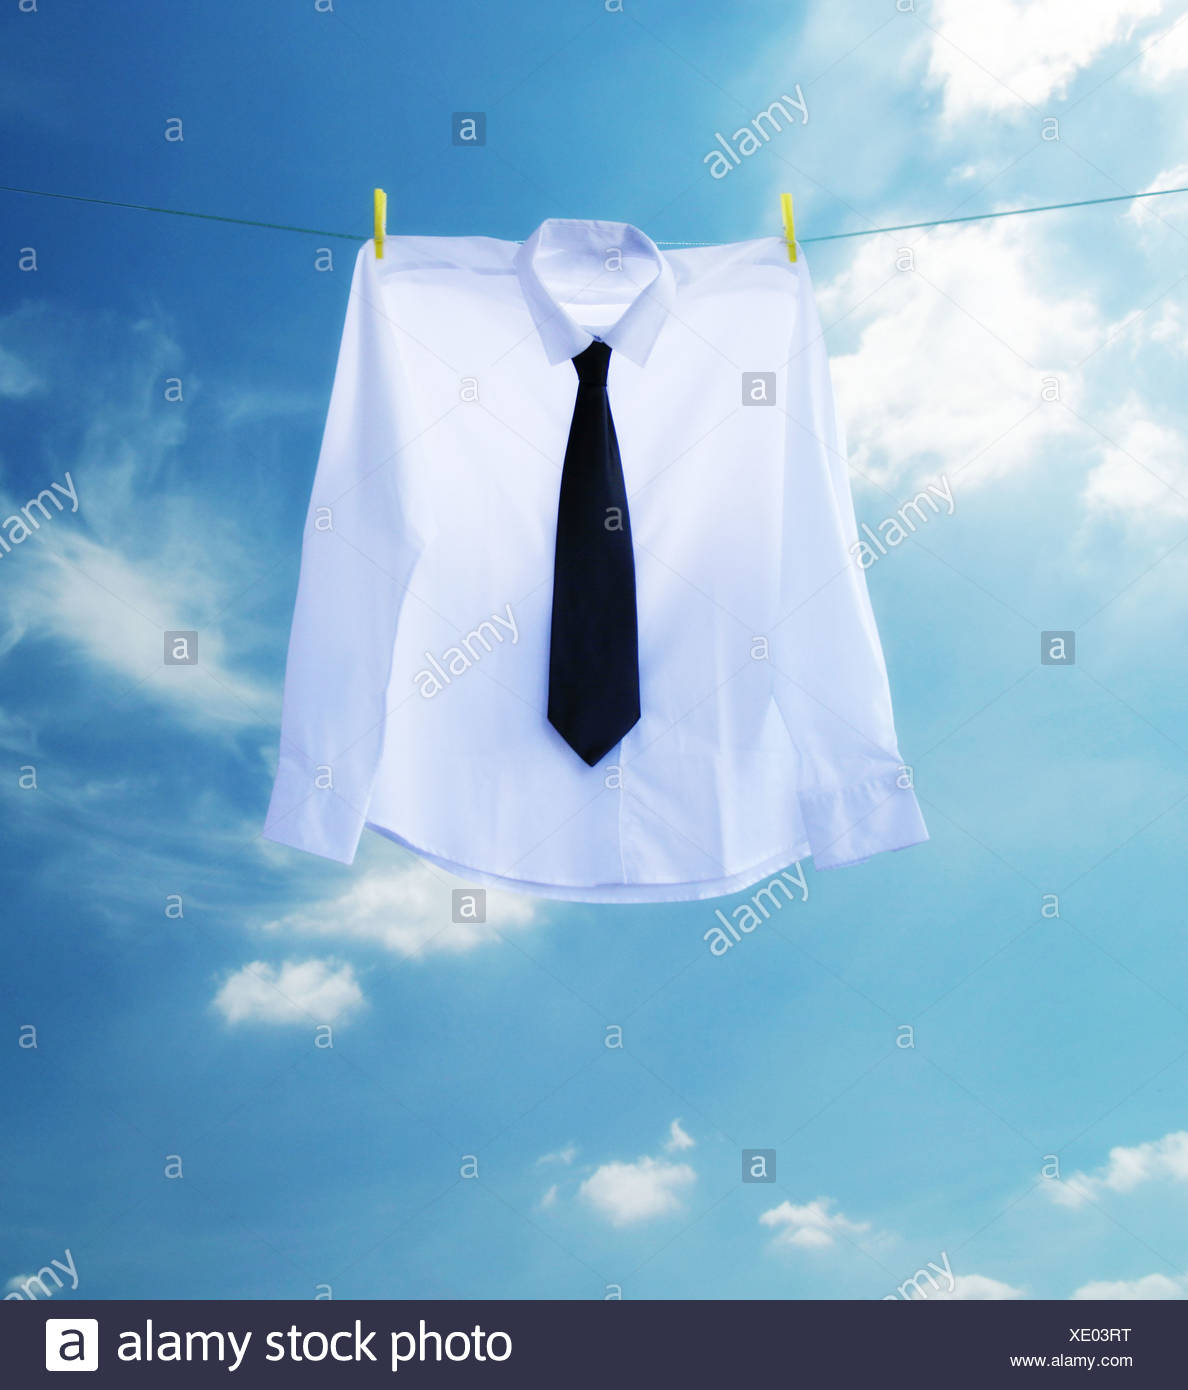 a shirt and tie handing on a washing line - Stock Image